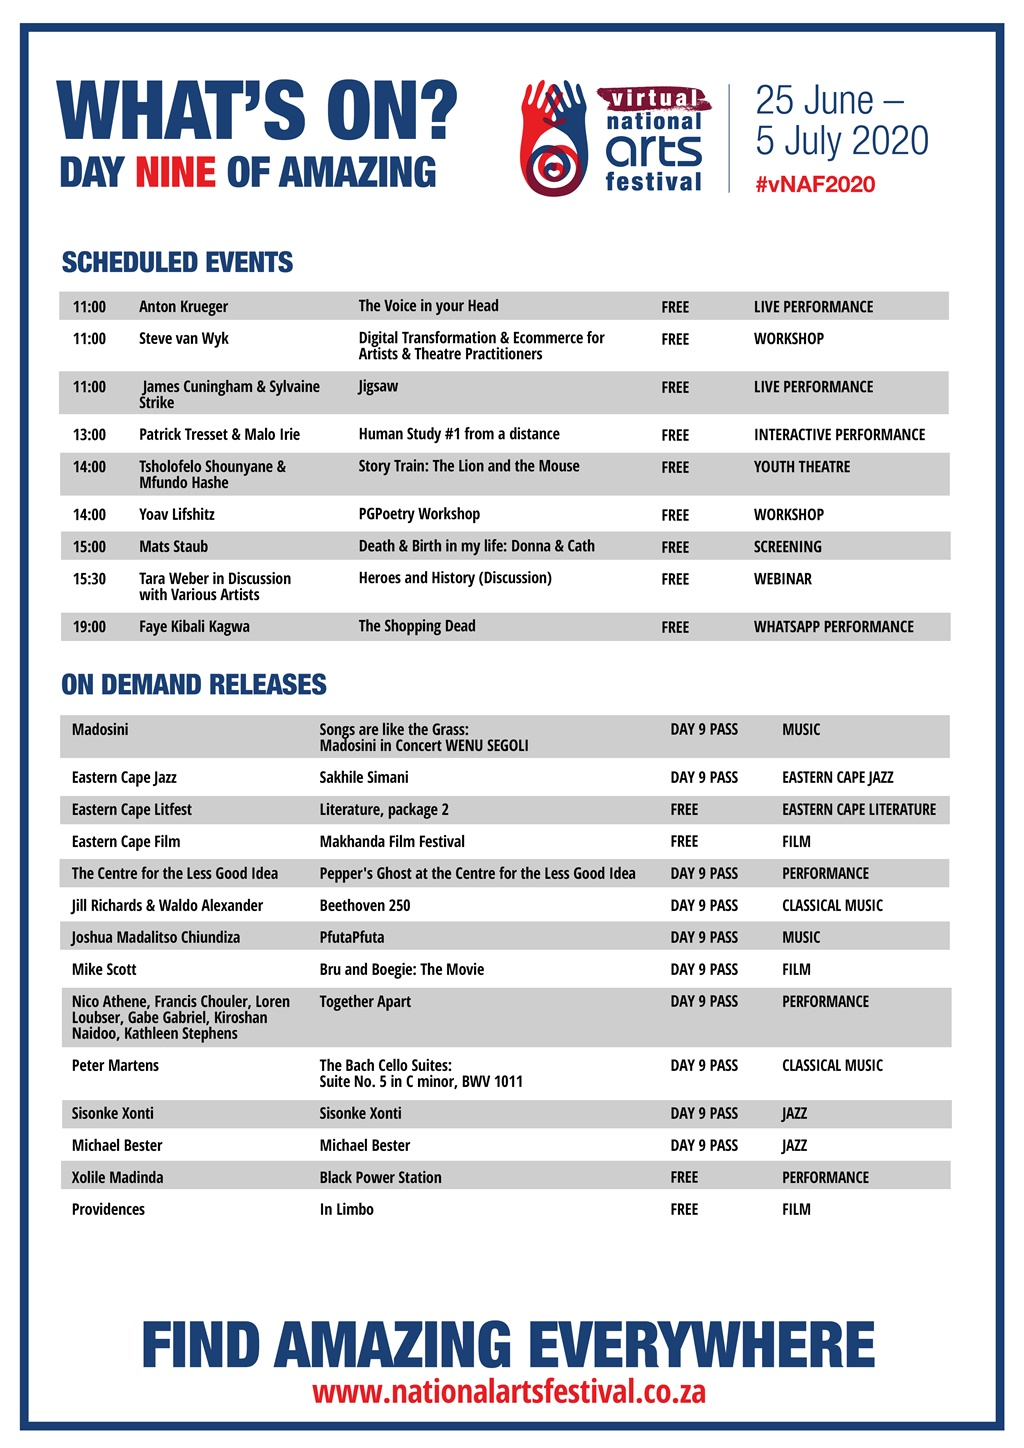 Day 9 programme of the NAF